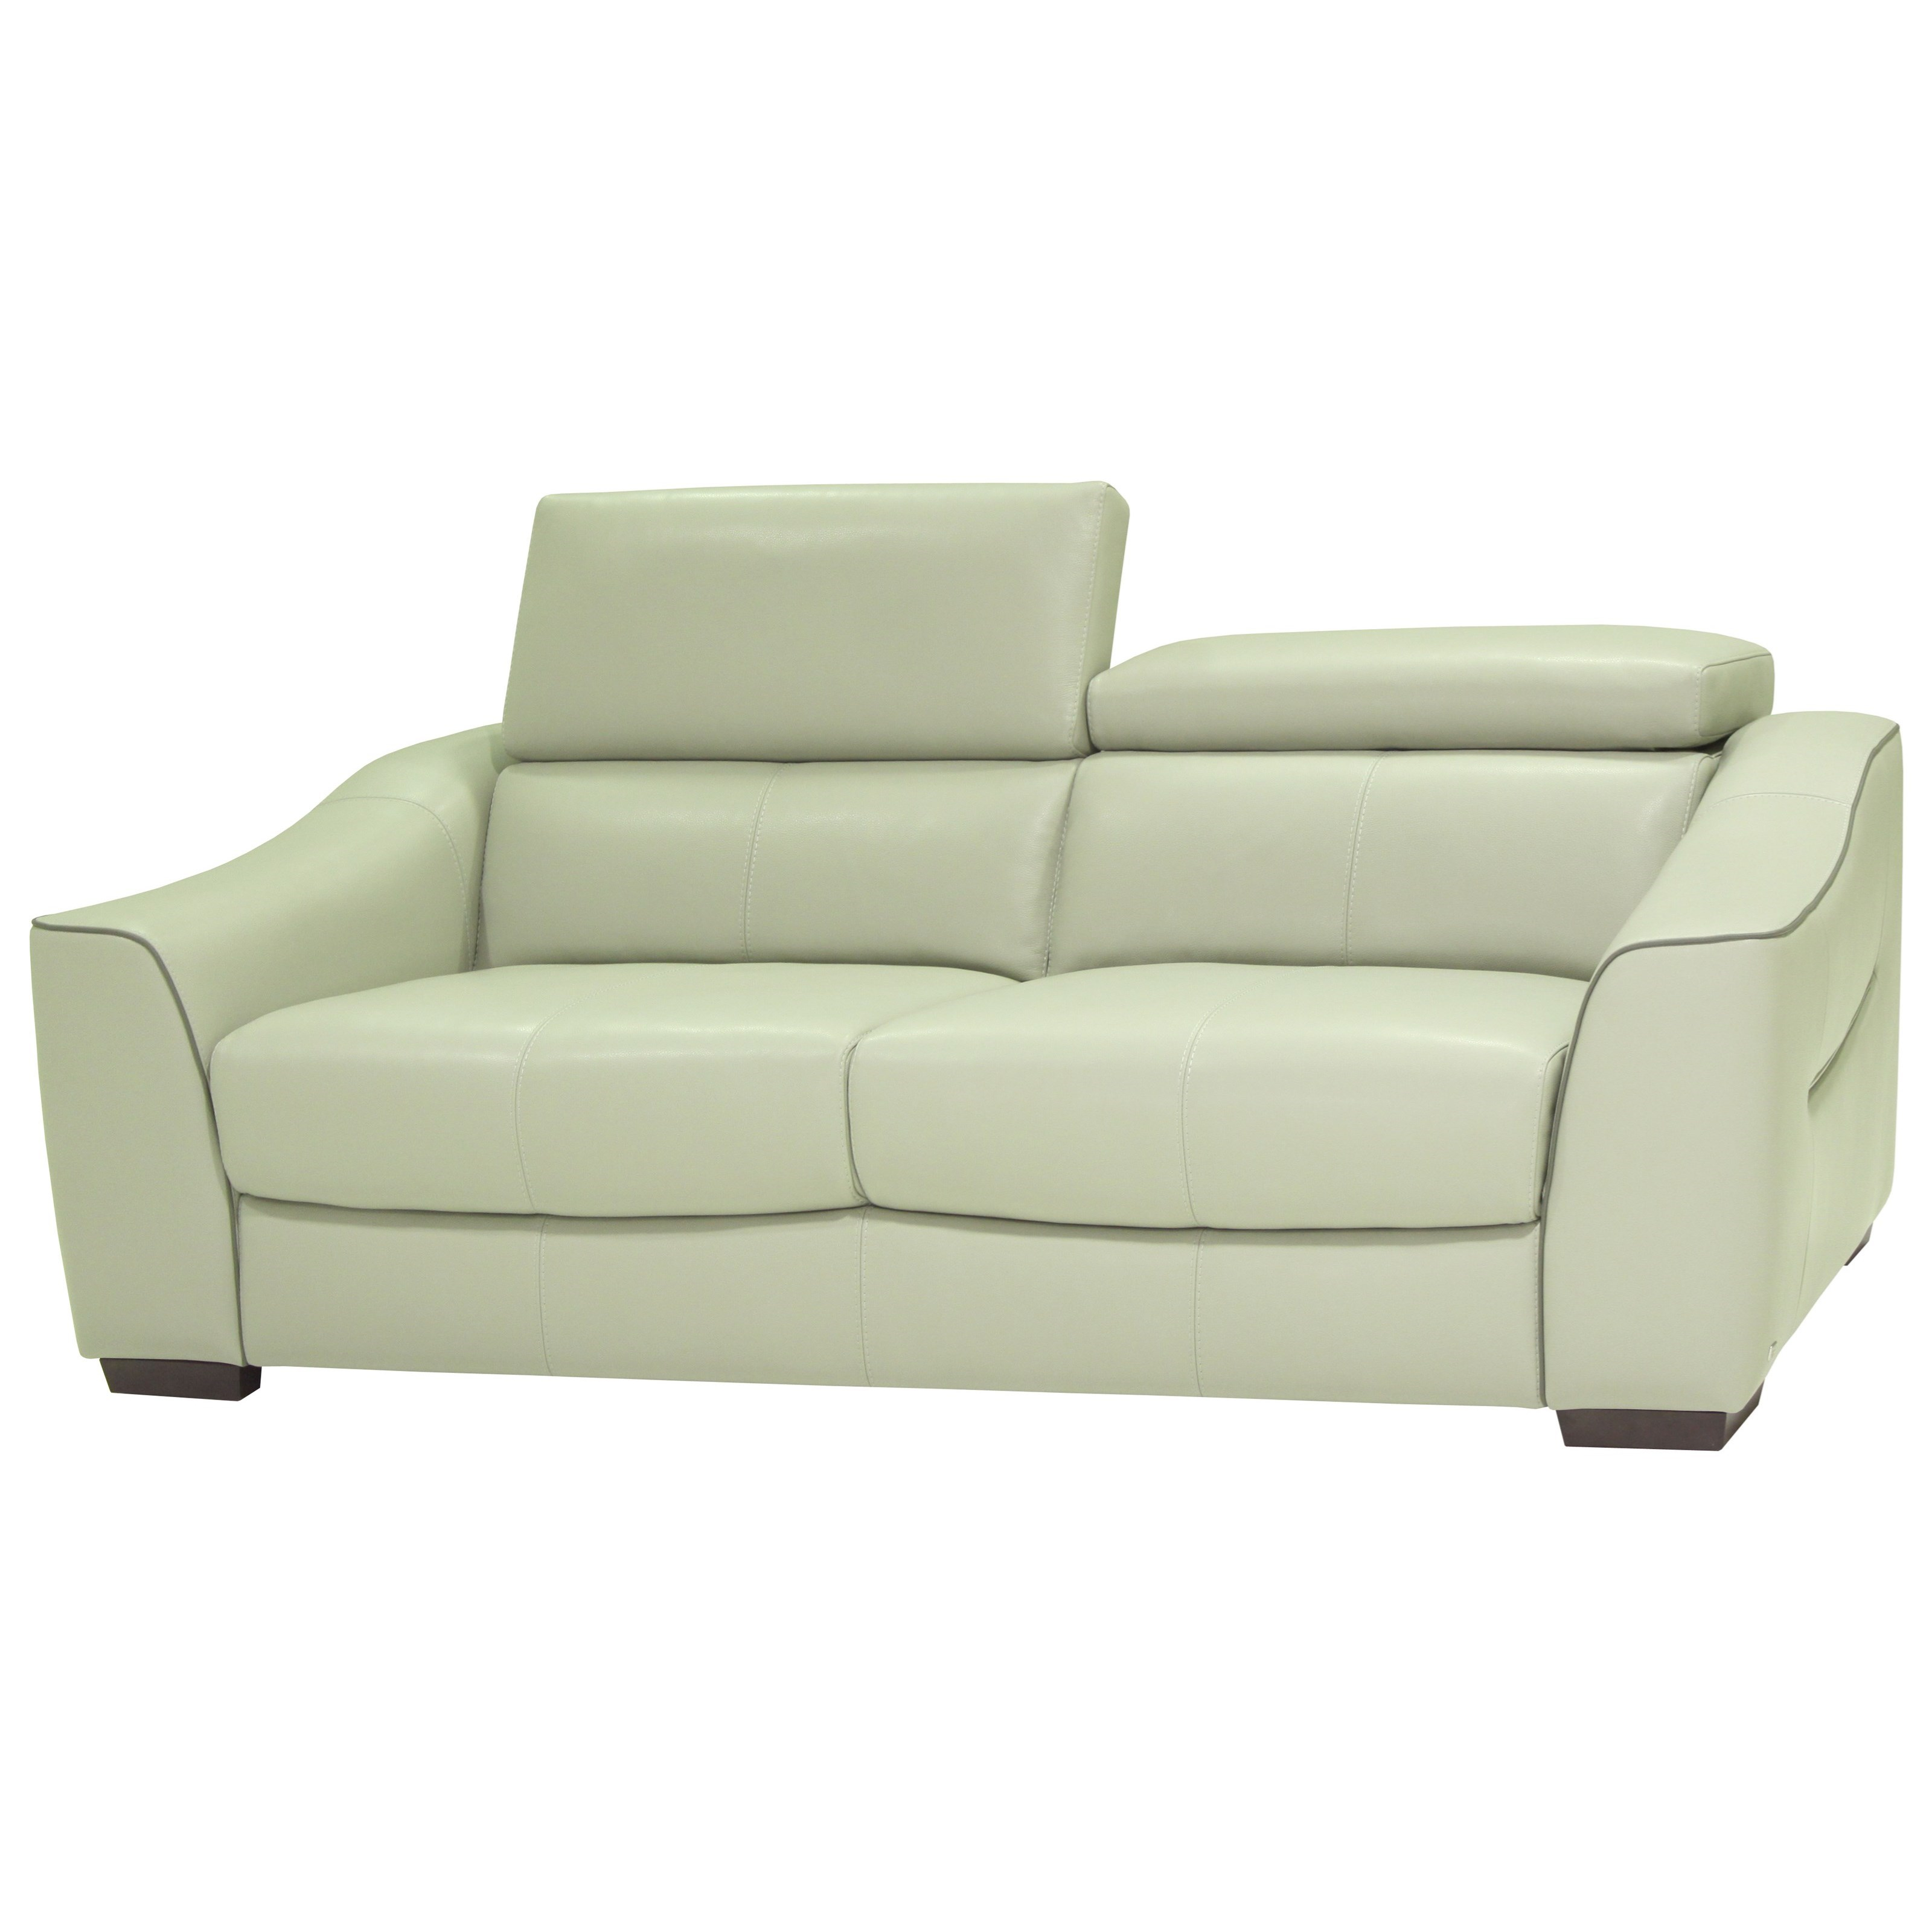 htl sofa range come bed design with price in pune 10707 25s2va contemporary power reclining